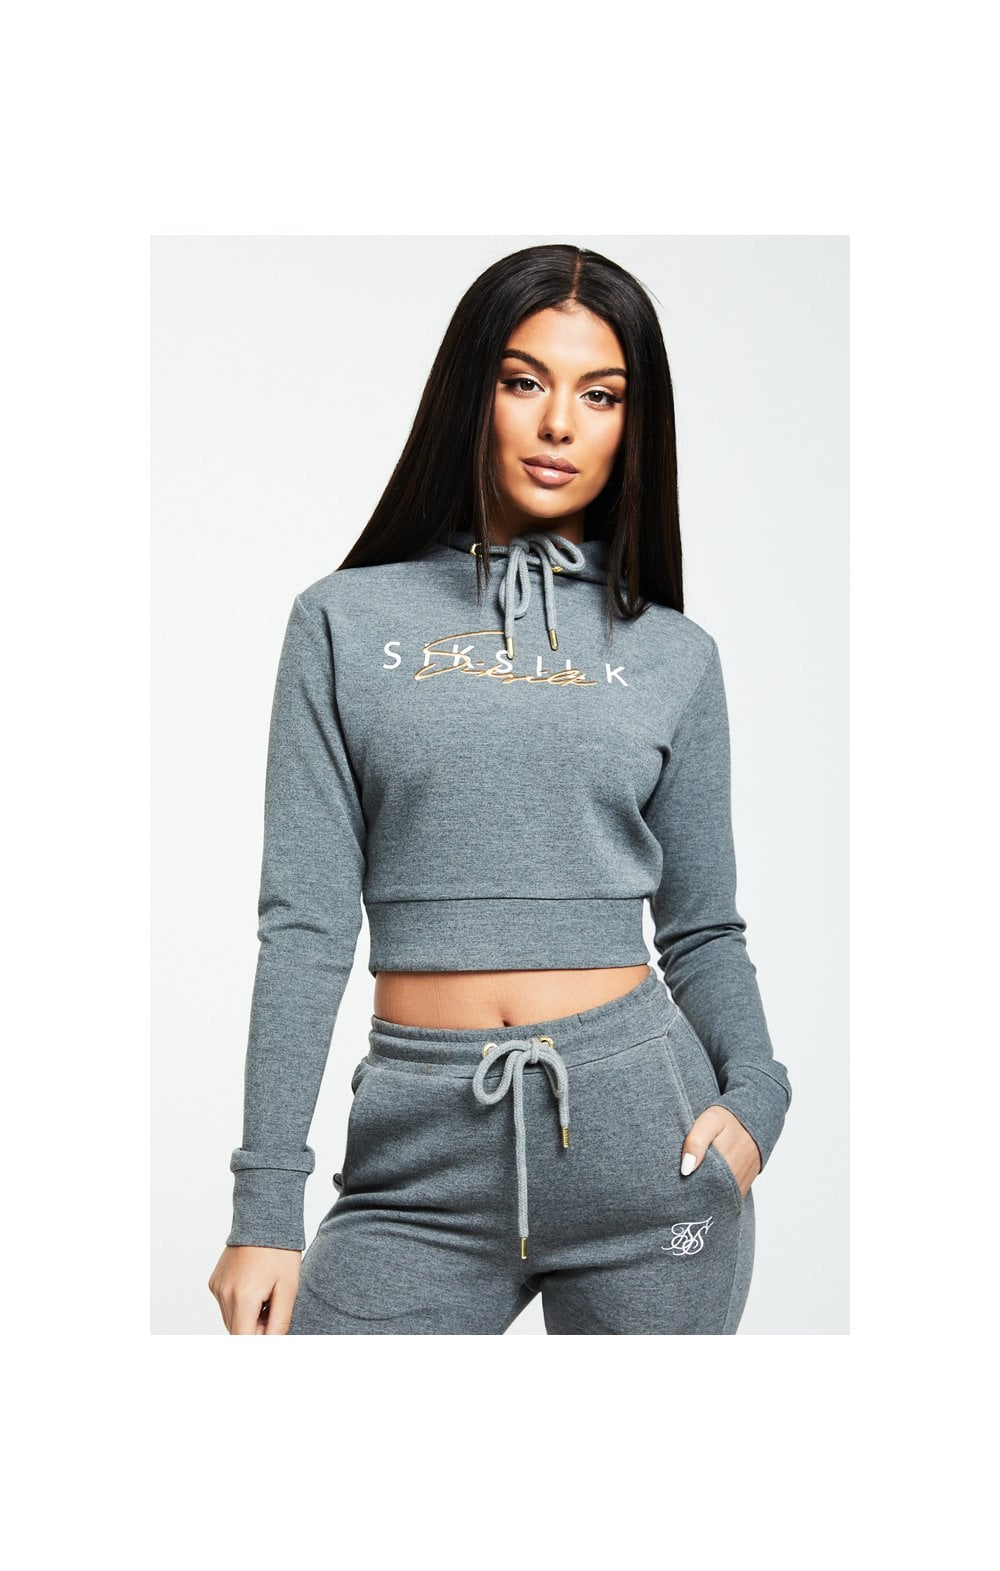 SikSilk Colour Signature Track Top - Dark Grey Marl  WOMEN SIZES: 4-XXXS